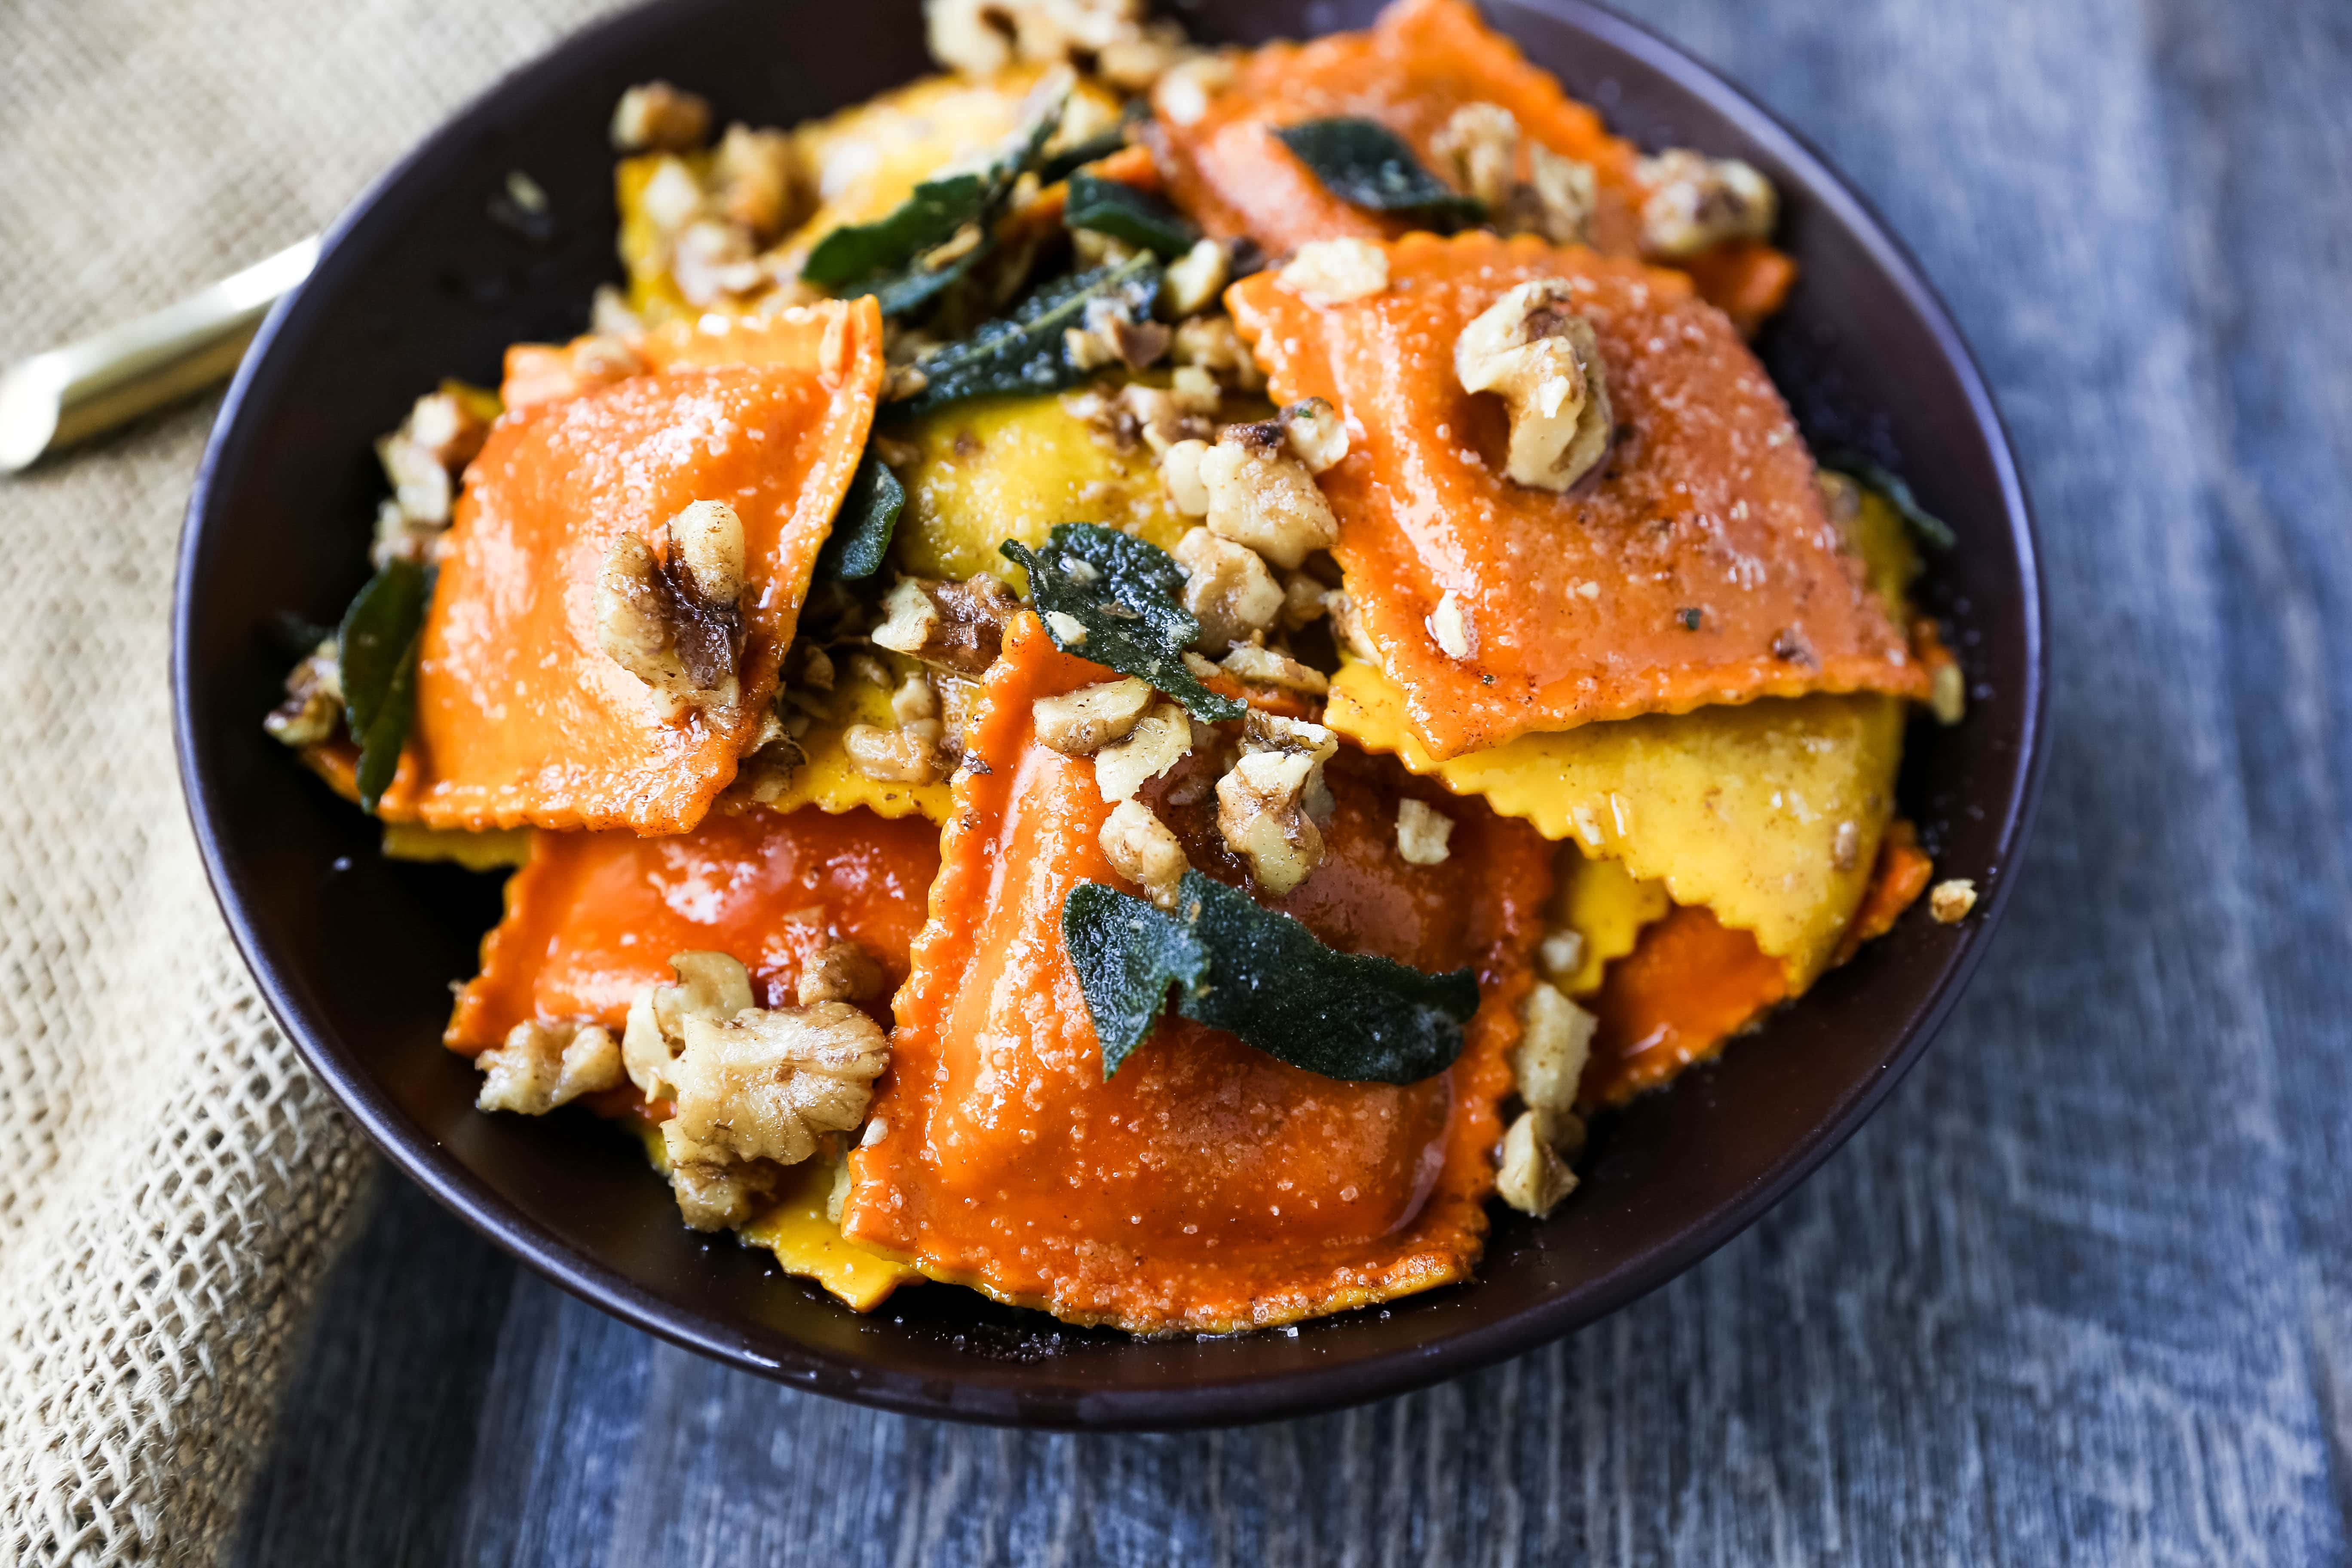 Ravioli with Browned Butter and Sage Fresh ravioli tossed in a browned butter sauce with crispy sage and toasted walnuts. A bowl of rich, creamy comfort food! www.modernhoney.com #ravioli #pasta #pumpkinravioli